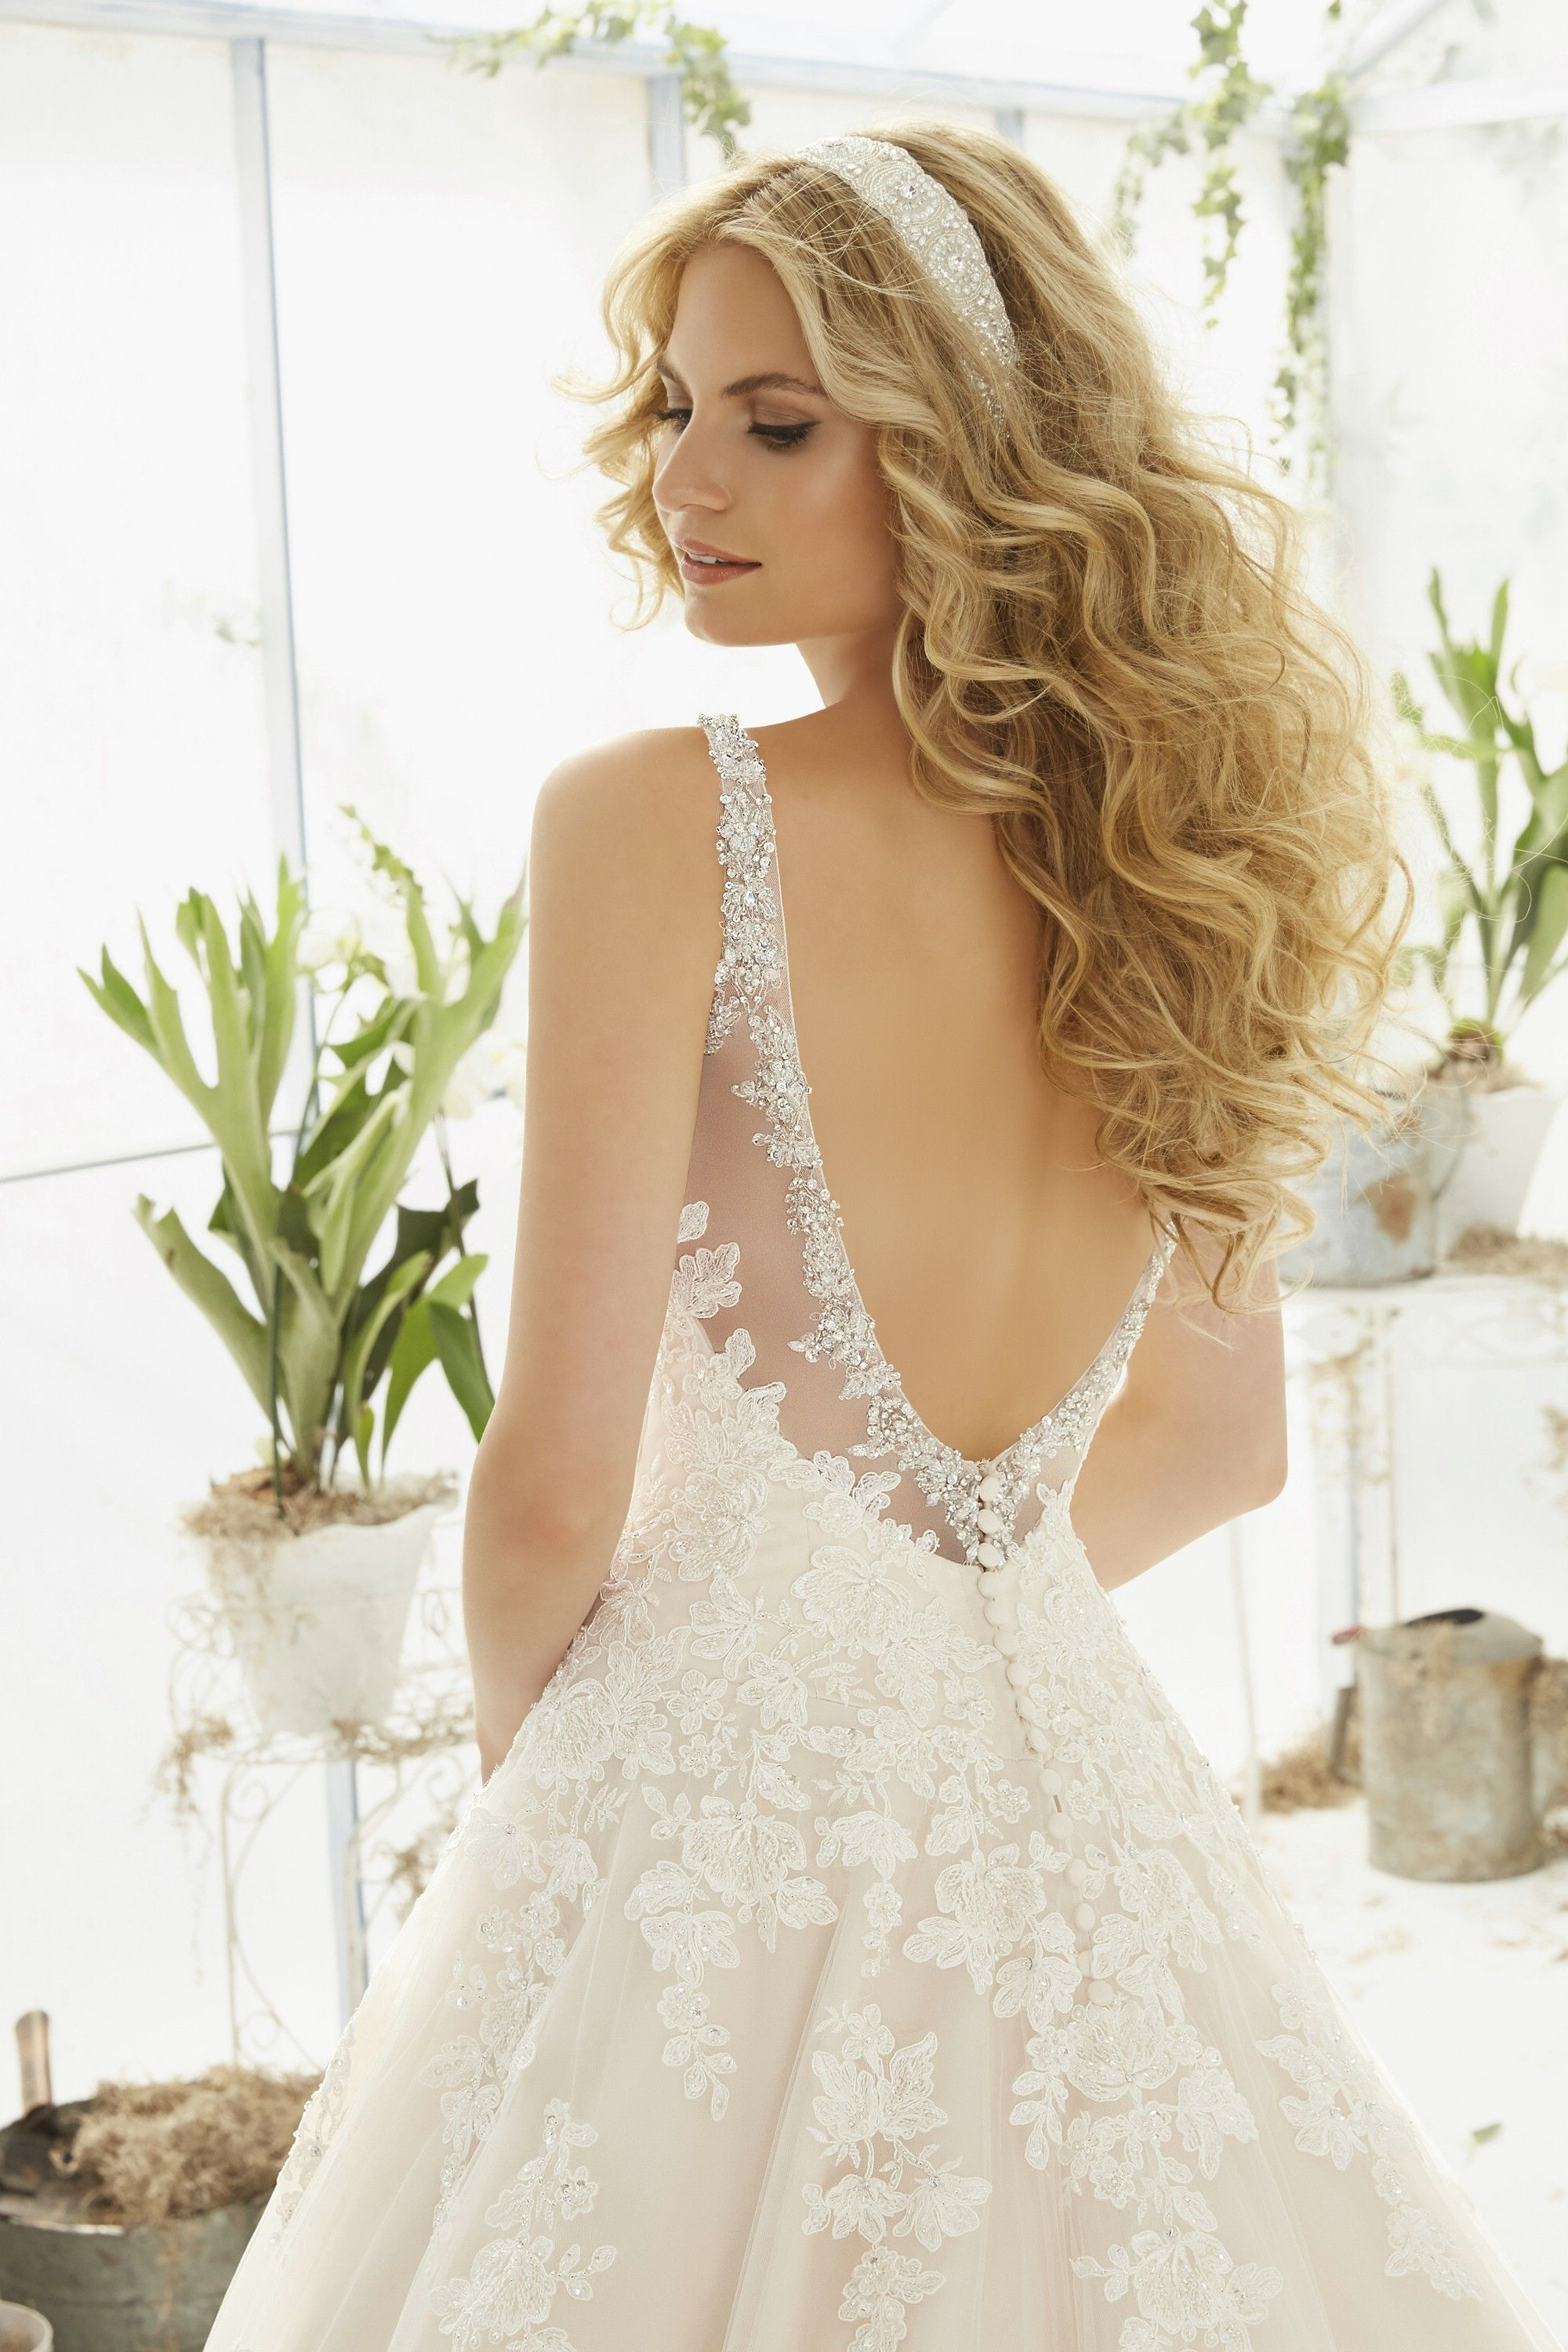 Mori Lee Wedding Dresses - Style 2811 | Wedding Dress Inspiration ...